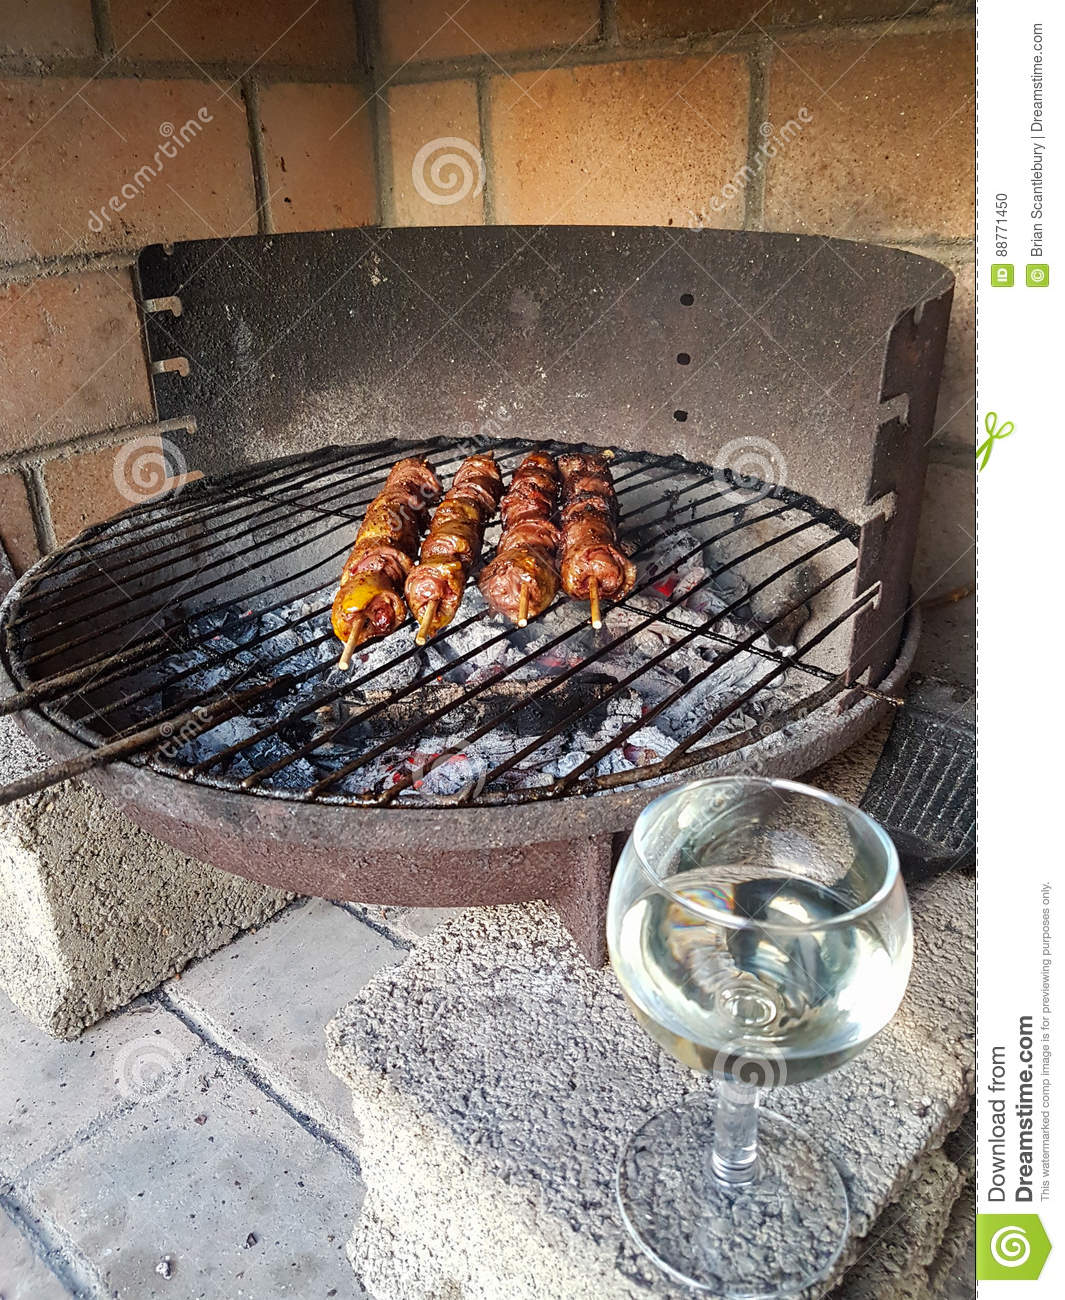 Barbequing kebabs over smoldering charcoal on old fashioned styl stock photo image 88771450